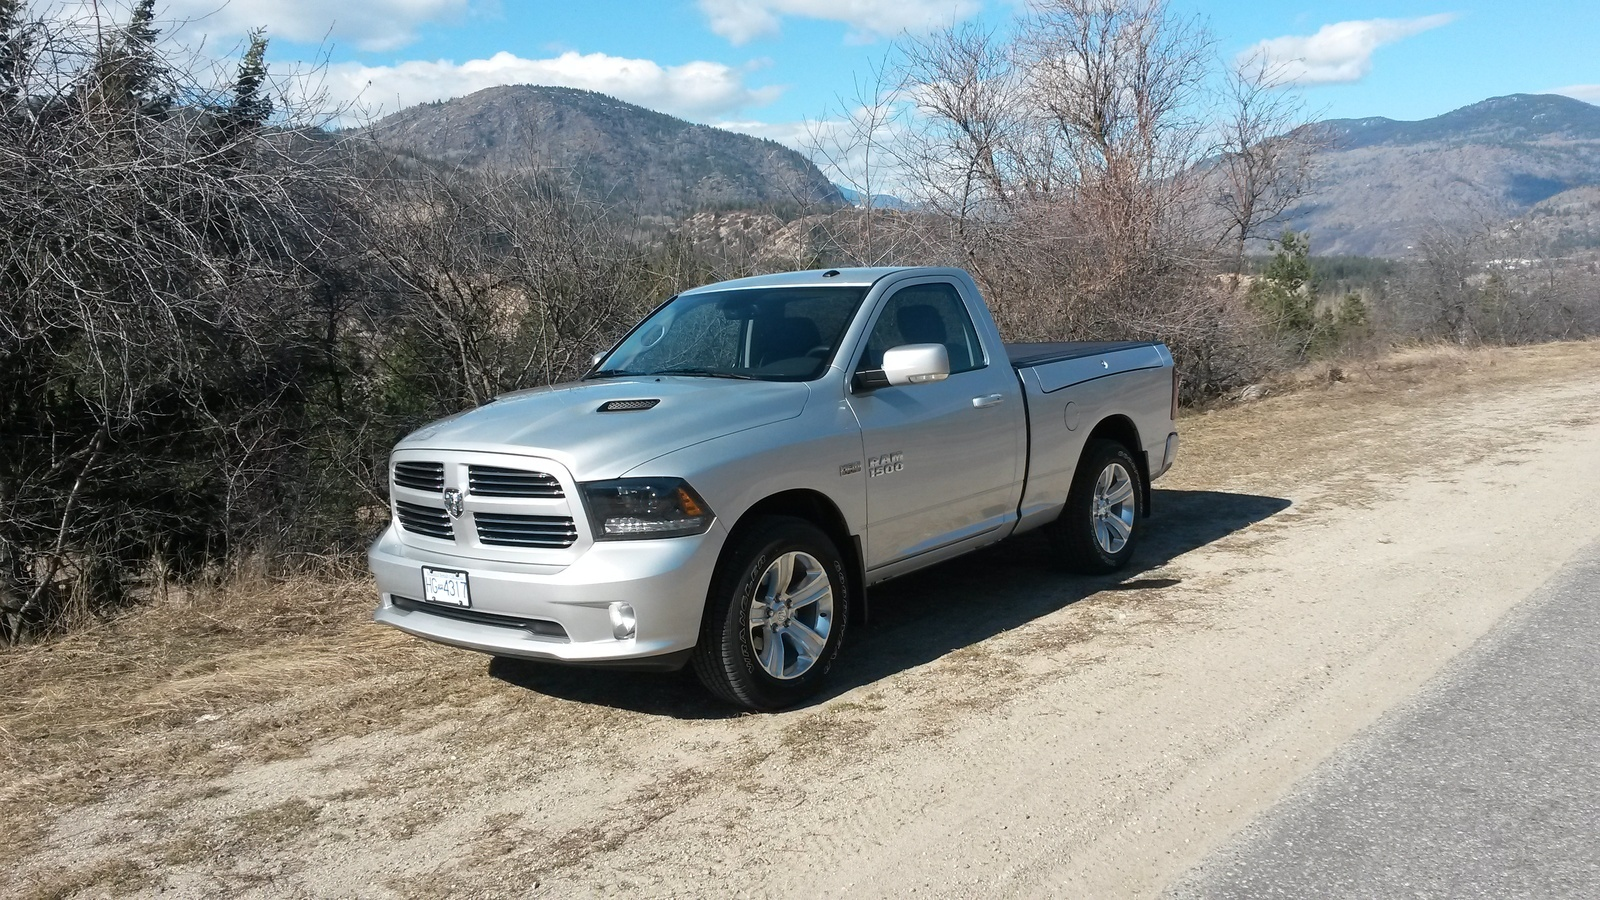 Ram 1500 Questions I Have A 2015 Ram Sport Reg Cab With All